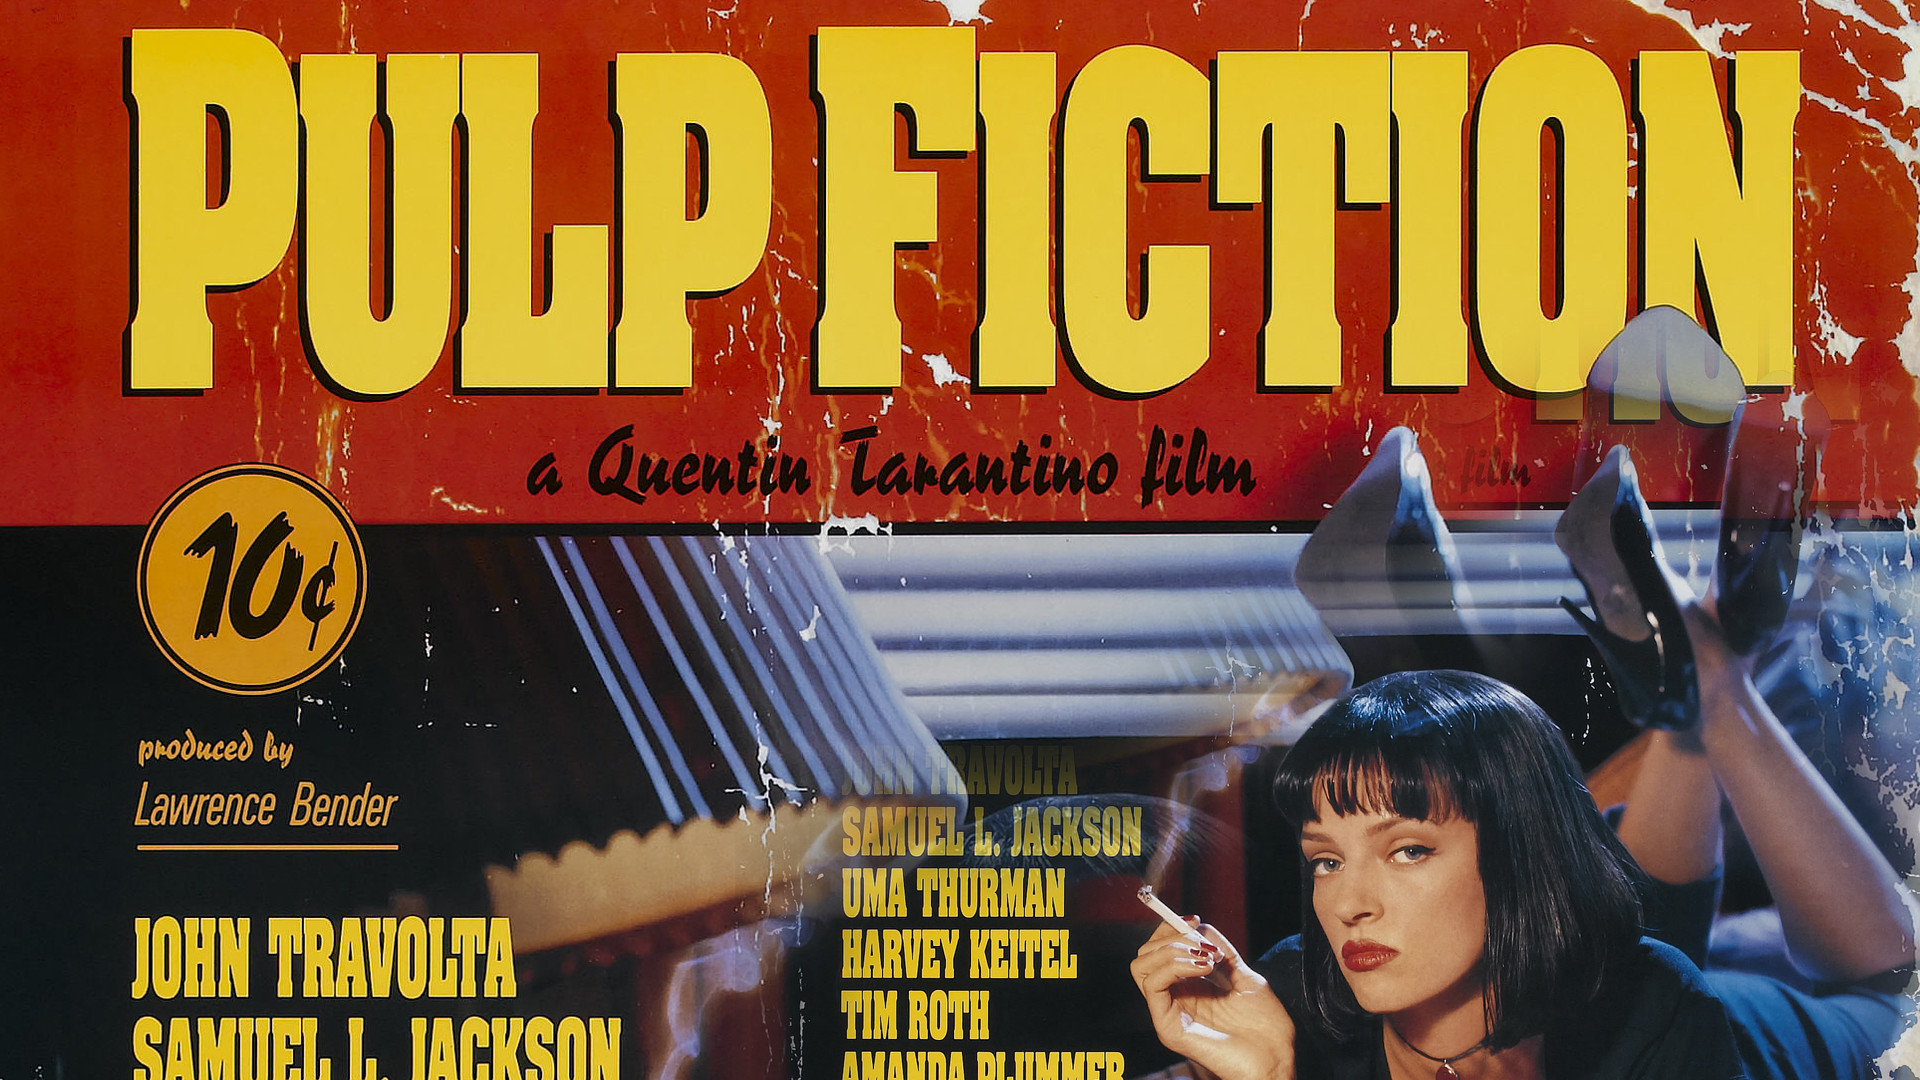 1920x1080 ... Pulp Fiction Xbox 360 Dashboard Wallpaper by Udder-Juice